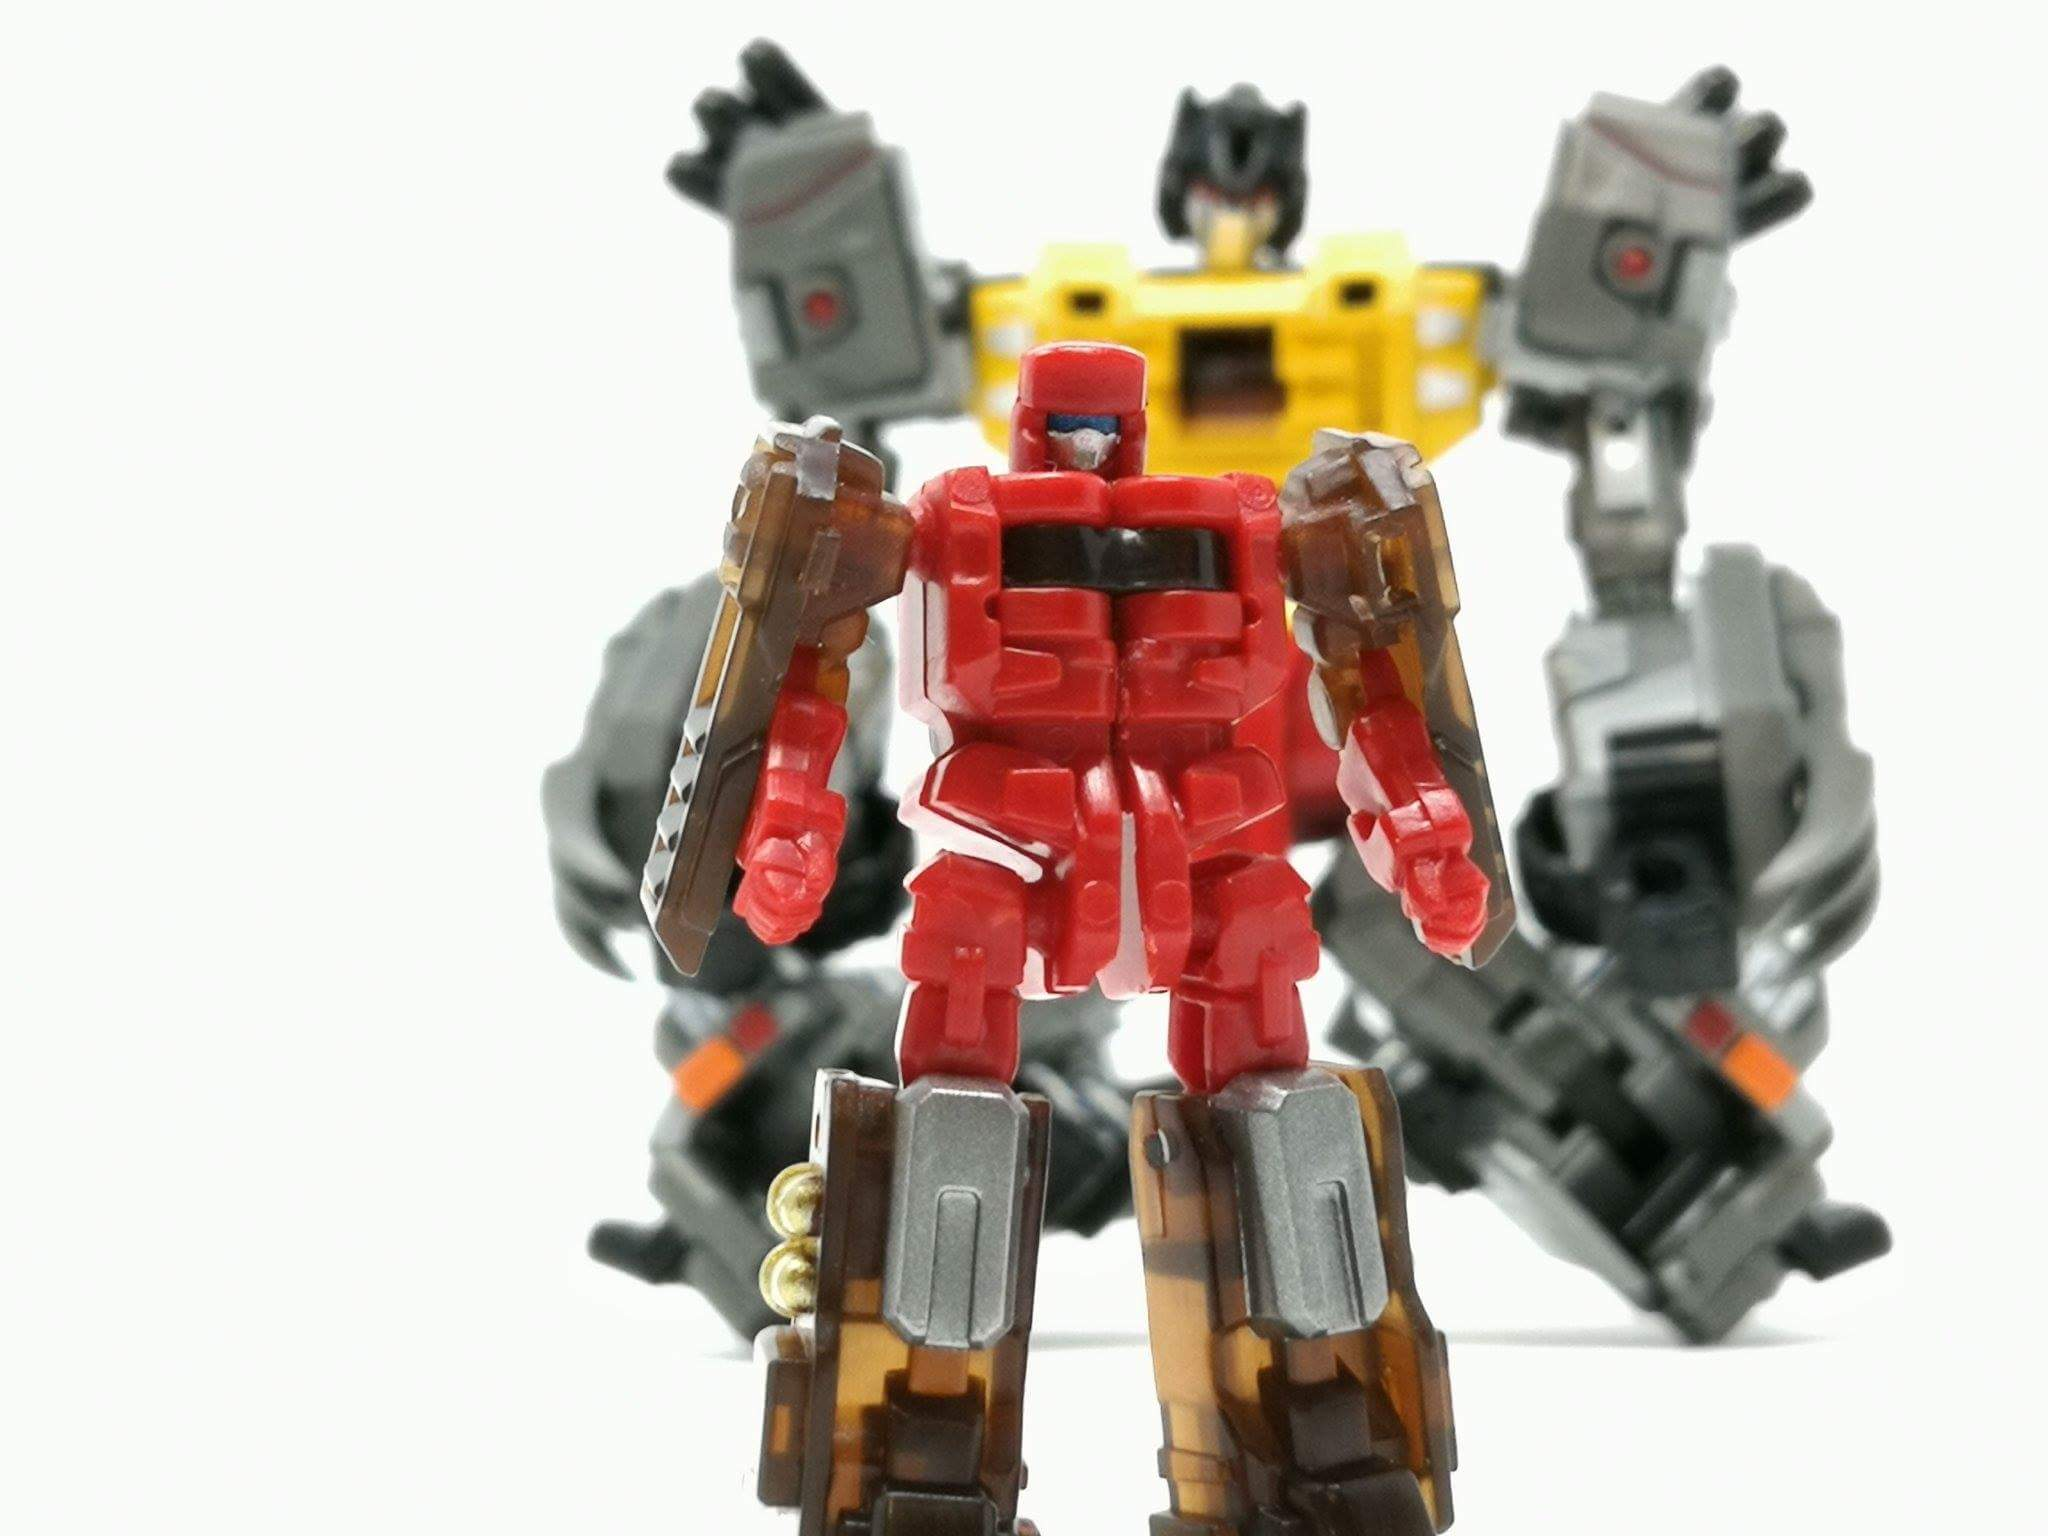 [FansProject] Produit Tiers - Jouets LER (Lost Exo Realm) - aka Dinobots - Page 4 6zqq8kCt_o